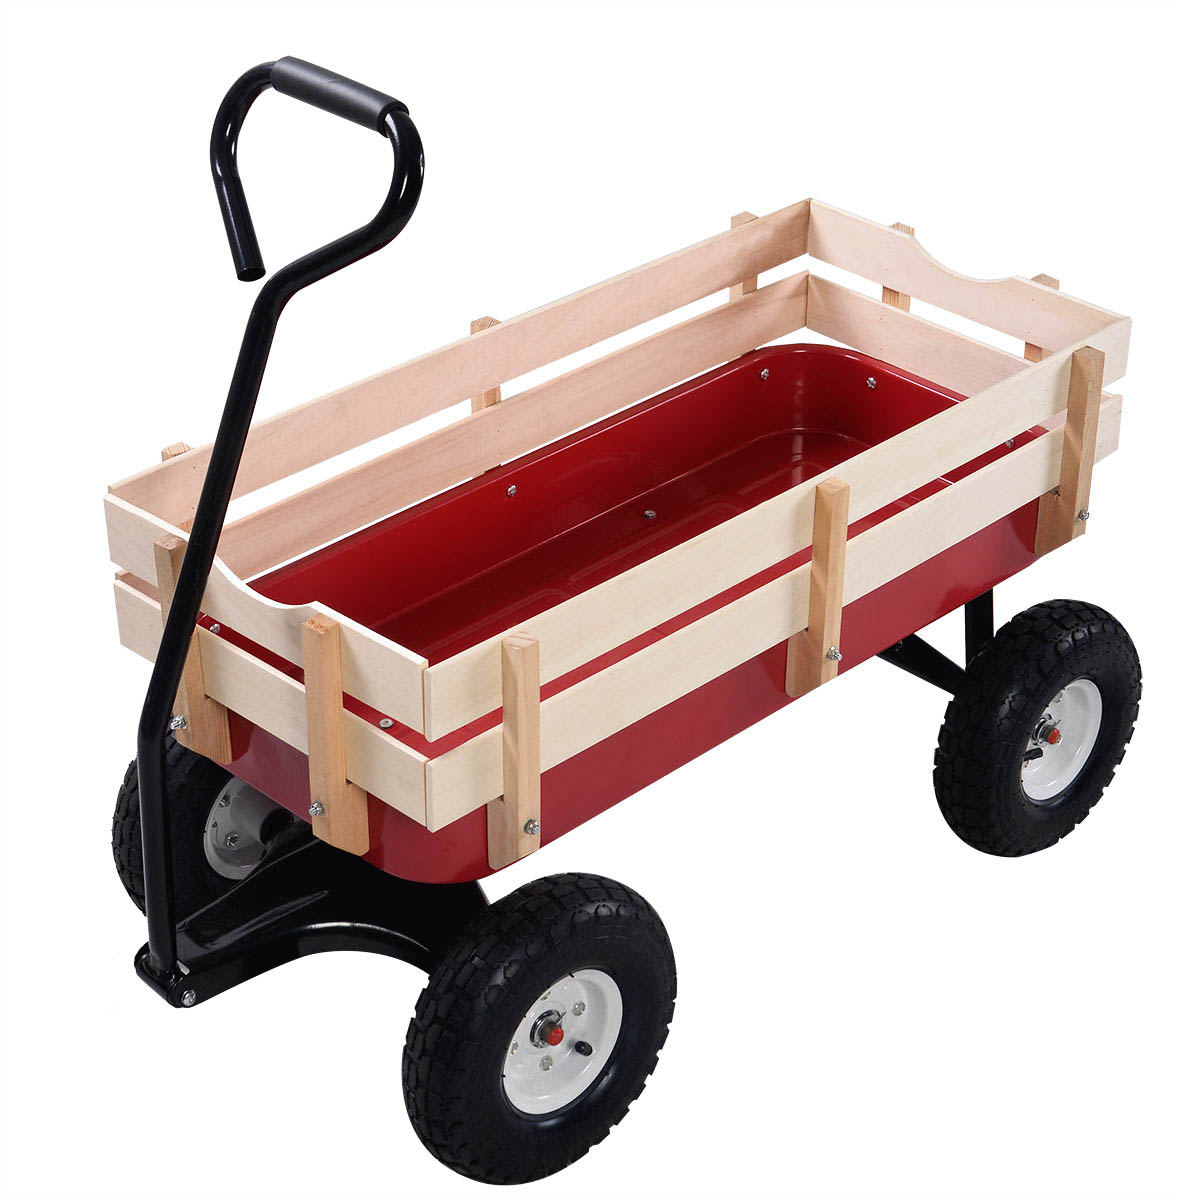 Garden Wagon with Wooden Railings